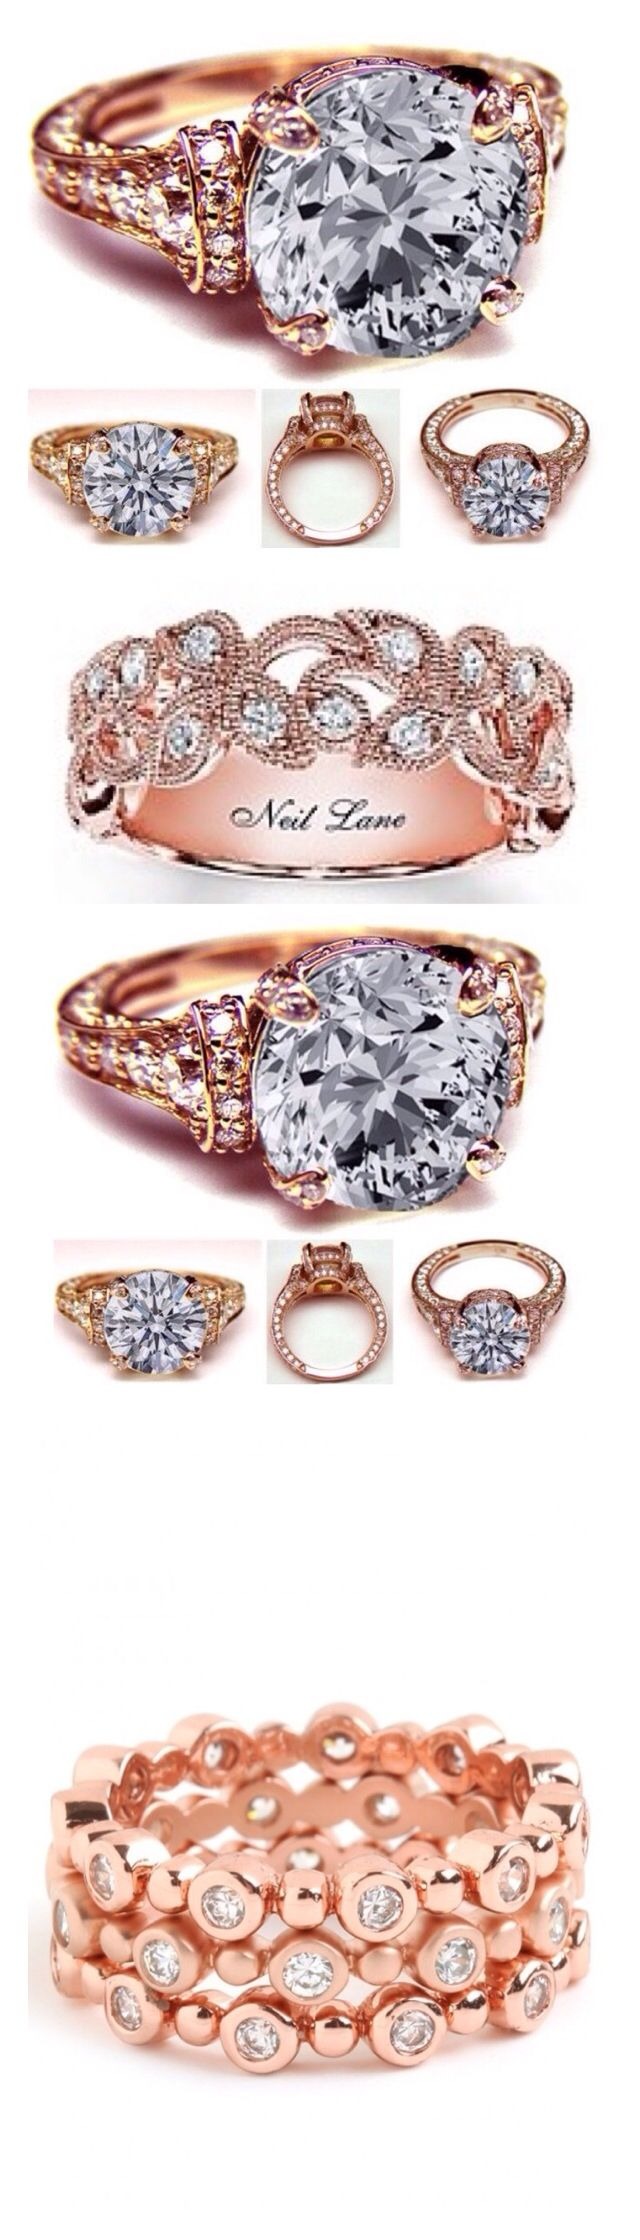 Rose Gold & Diamonds LBV